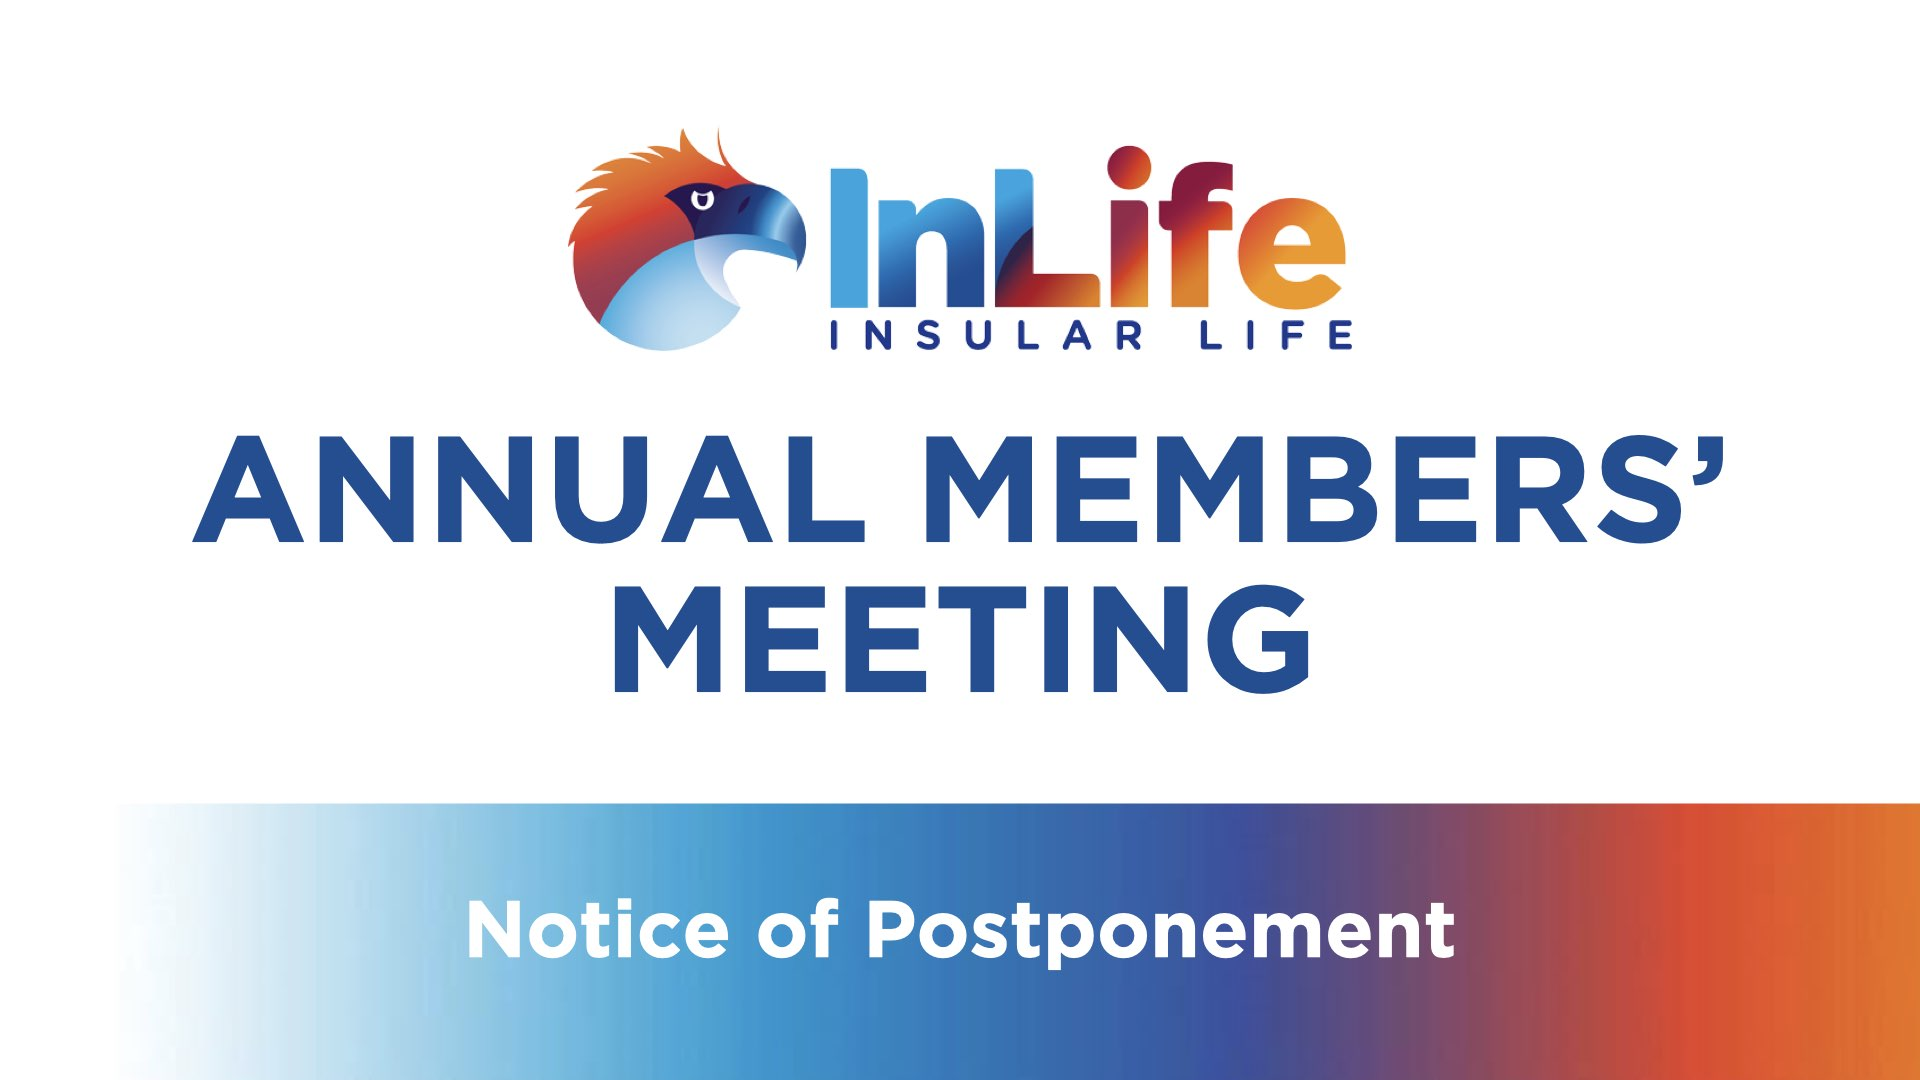 Notice of Postponement of the Annual Members' Meeting (AMM) scheduled on 27 May 2020